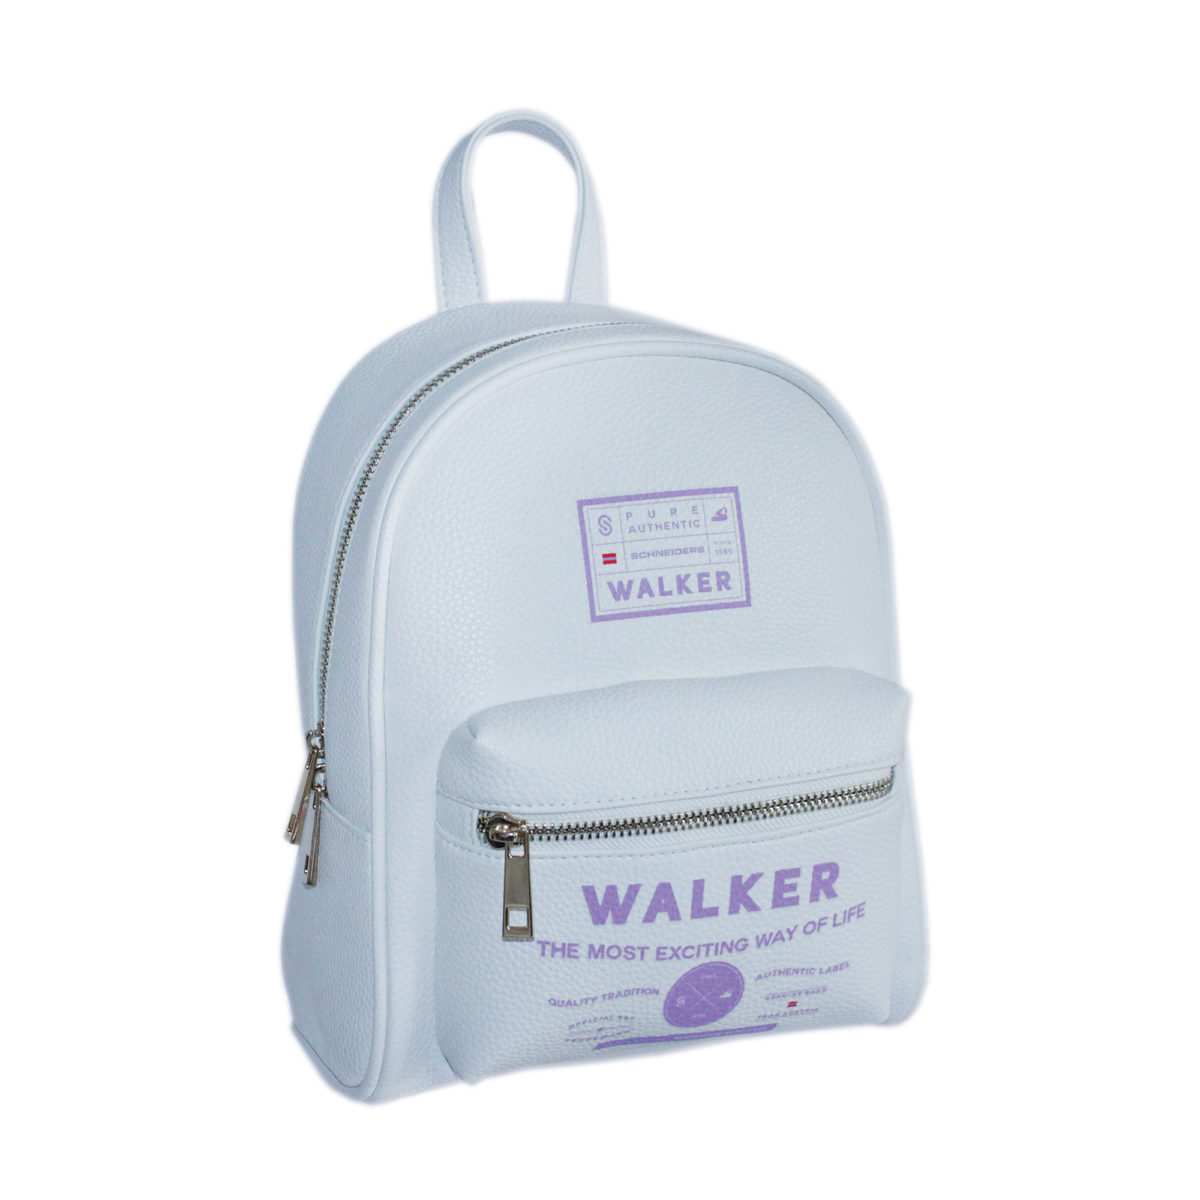 https://walker-bags.com/wp-content/uploads/2020/06/2000-x-2000-6.jpg